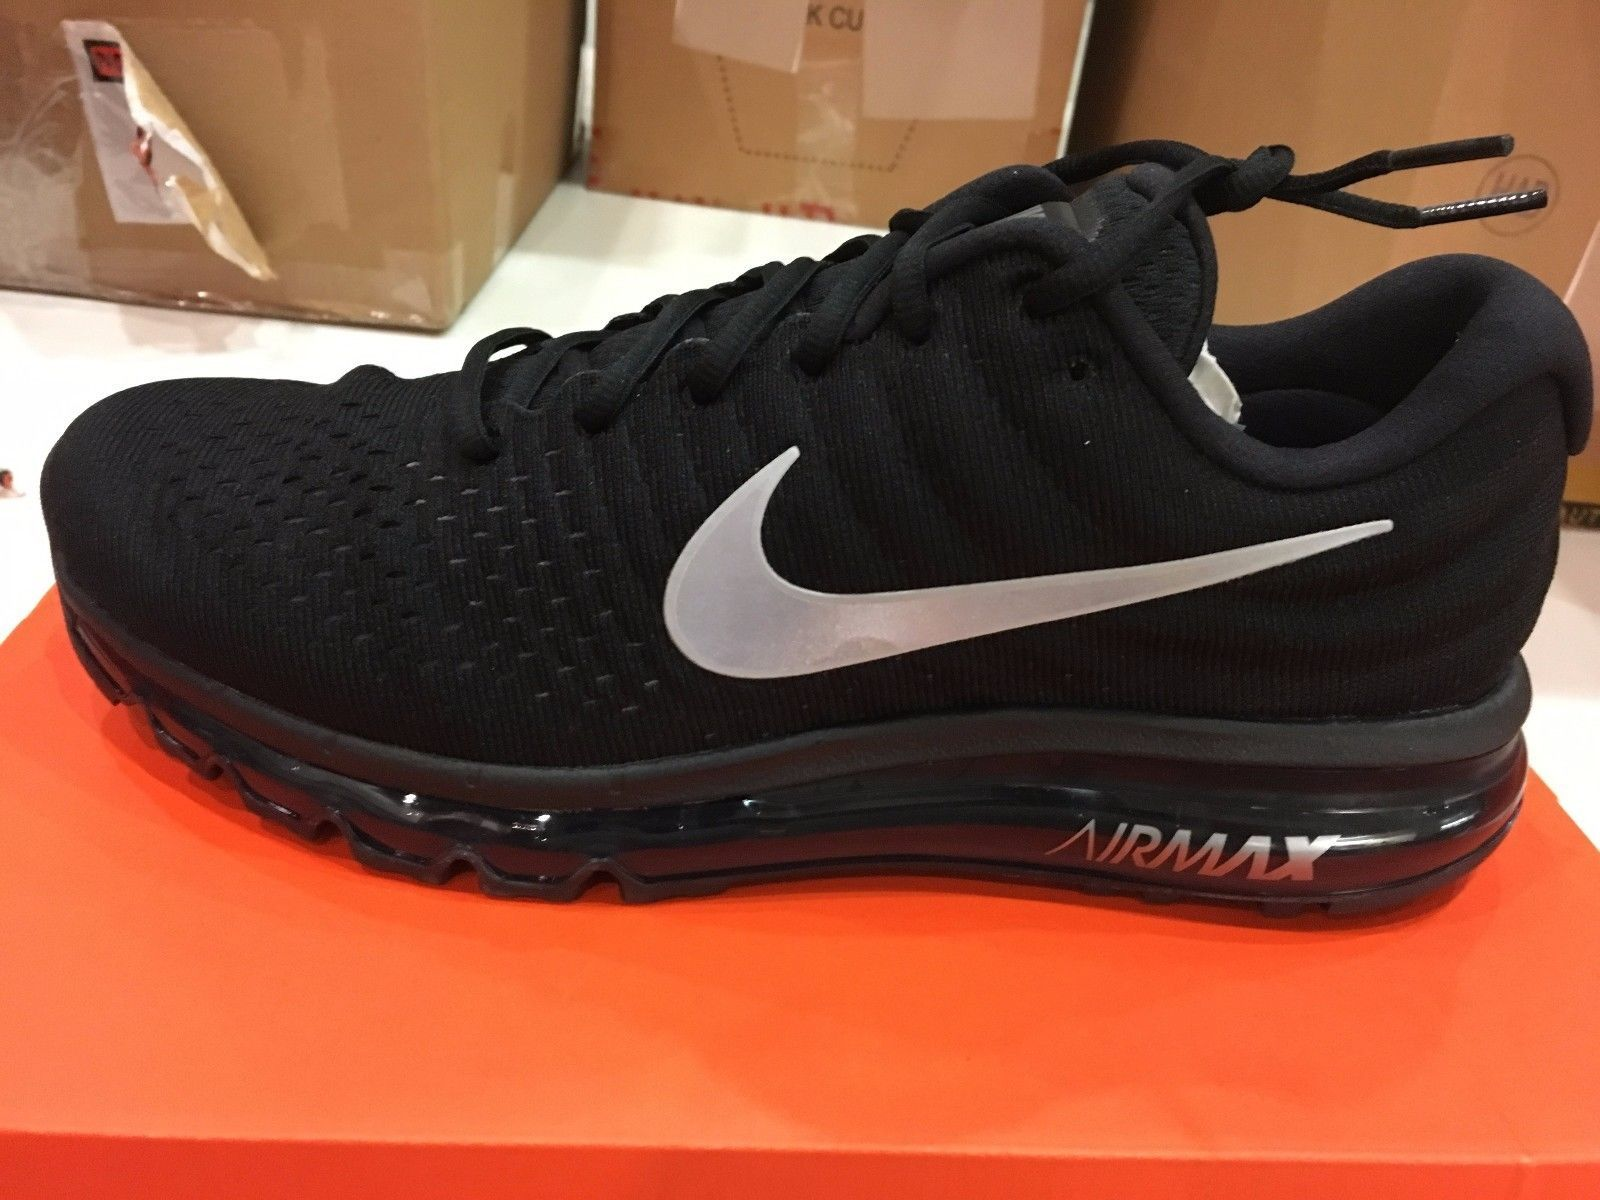 low priced 47e8b 8c62f NIKE AIR MAX 2017 NEW IN BOX! MENS SIZE 10.5 ONLY  110.00 WITH FREE  SHIPPING!